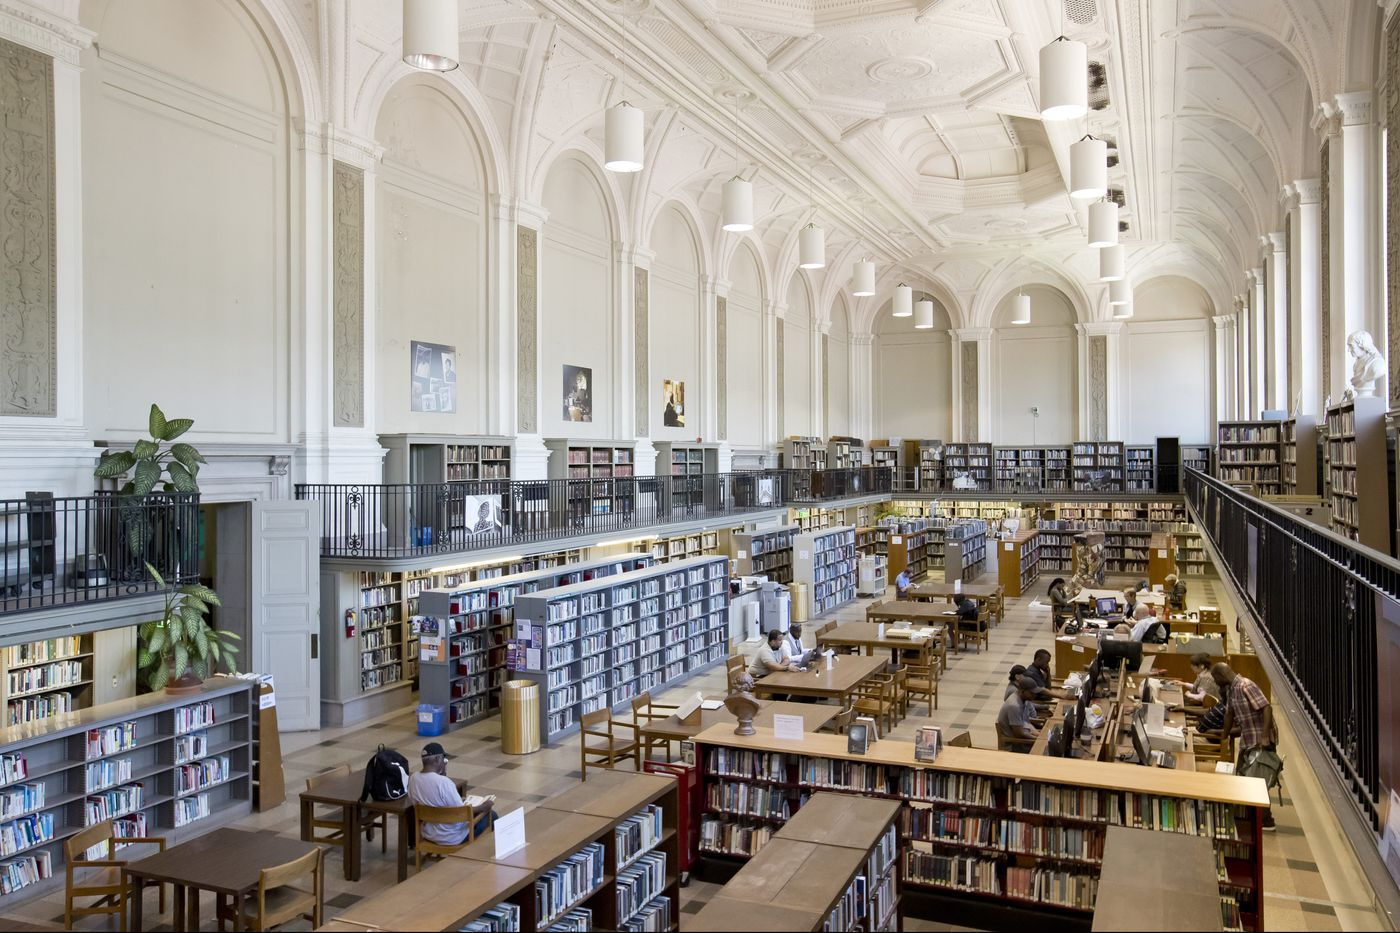 Most city public libraries to close on Saturdays due to lack of funding